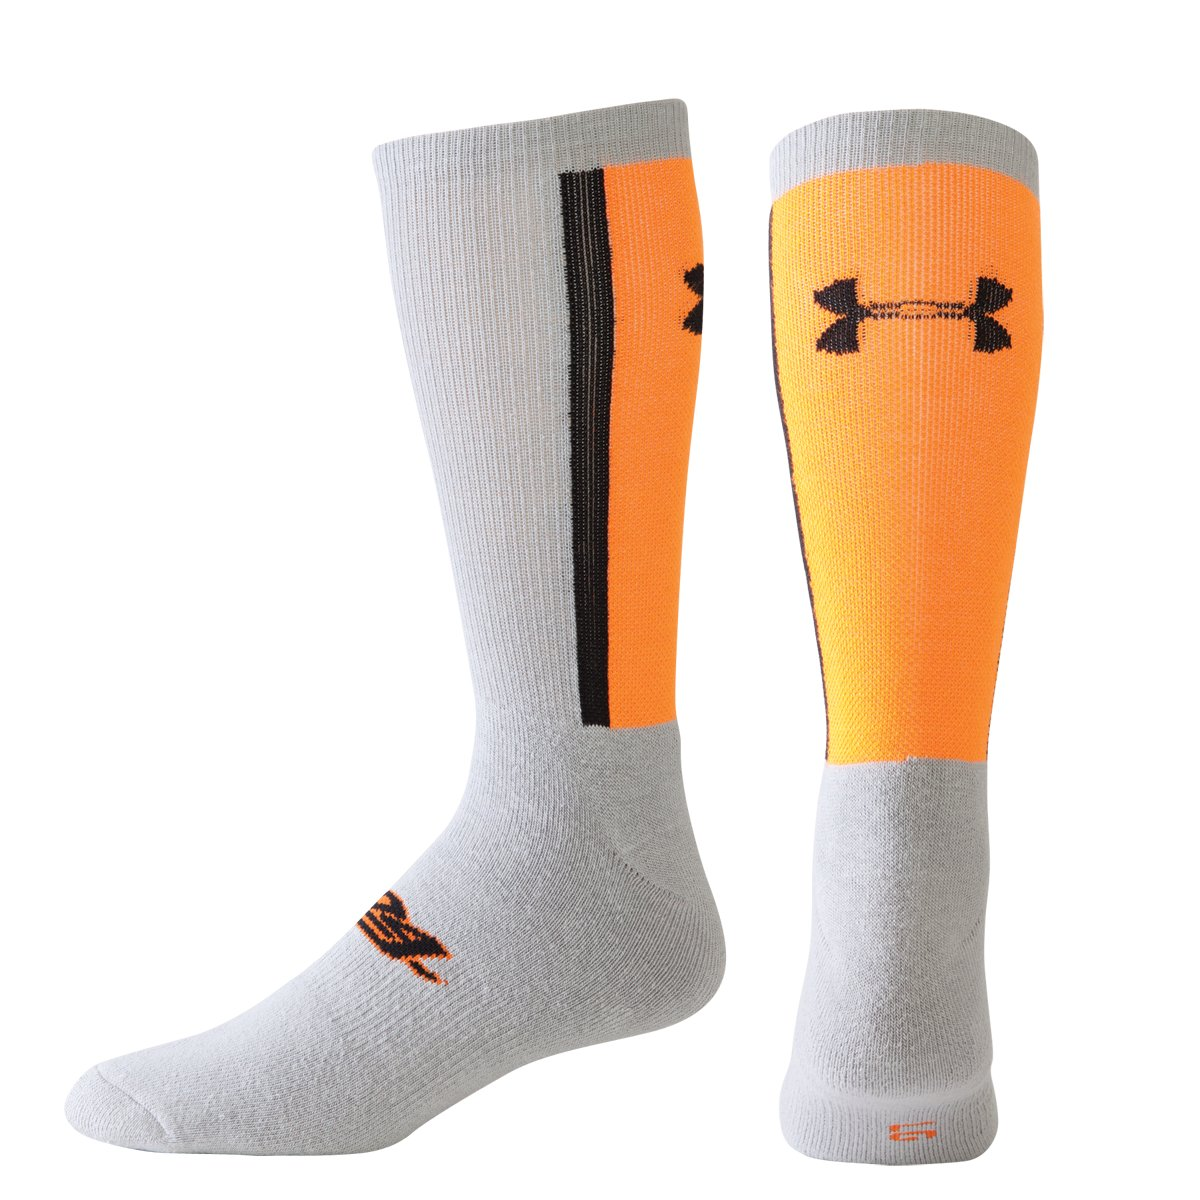 UA Elite 24 Basketball Socks, Blaze Orange